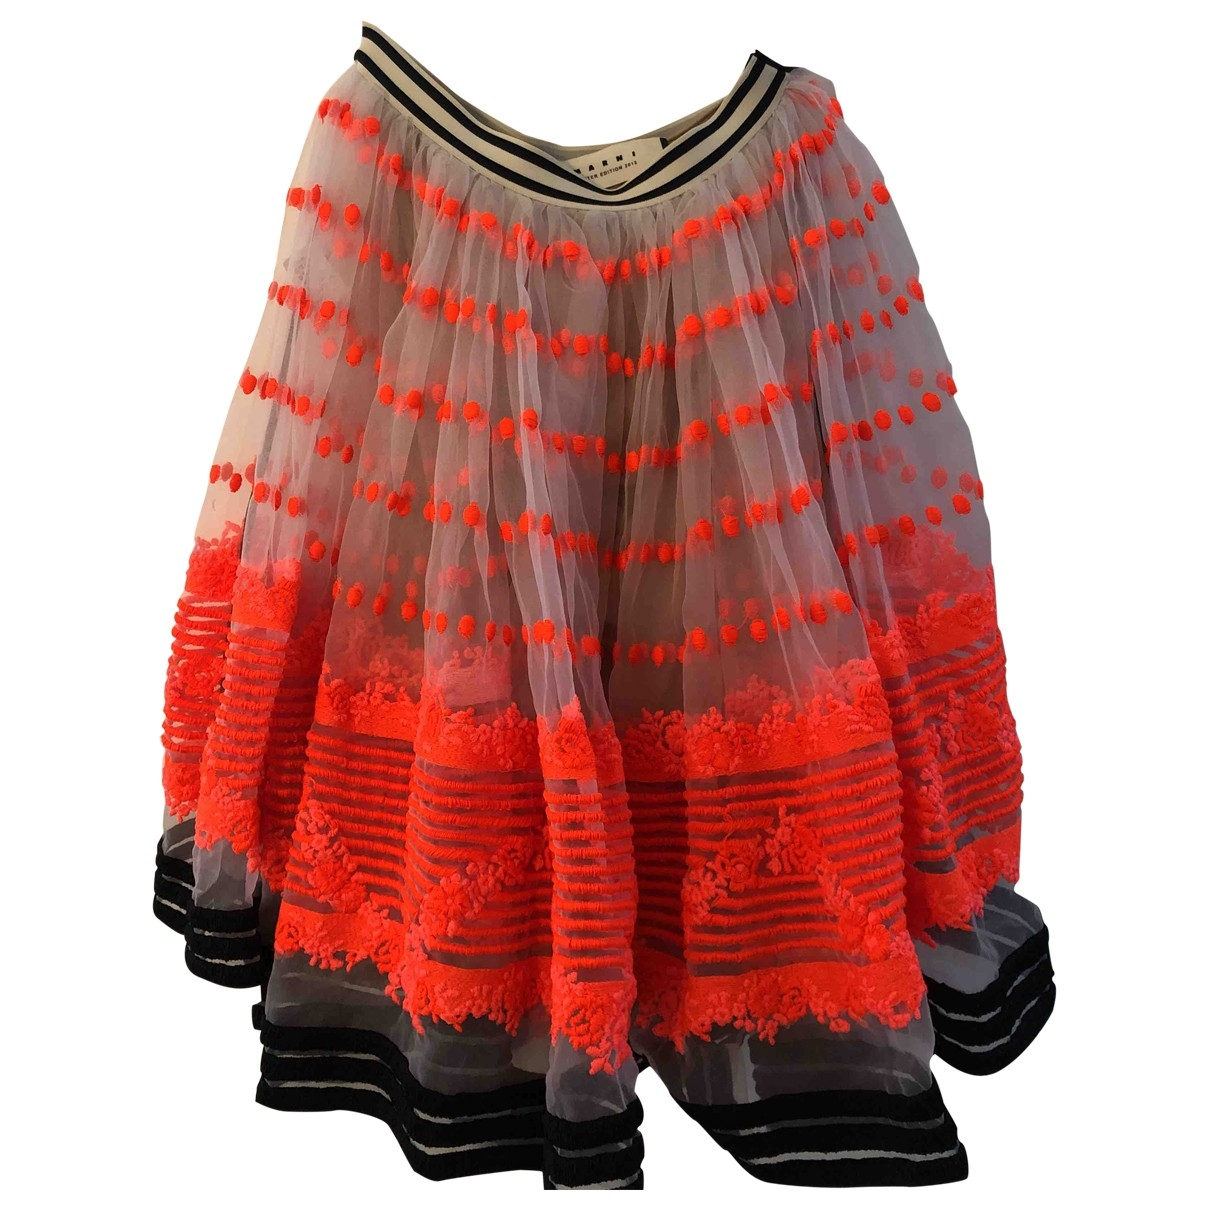 Marni \N skirt for Women 40 IT